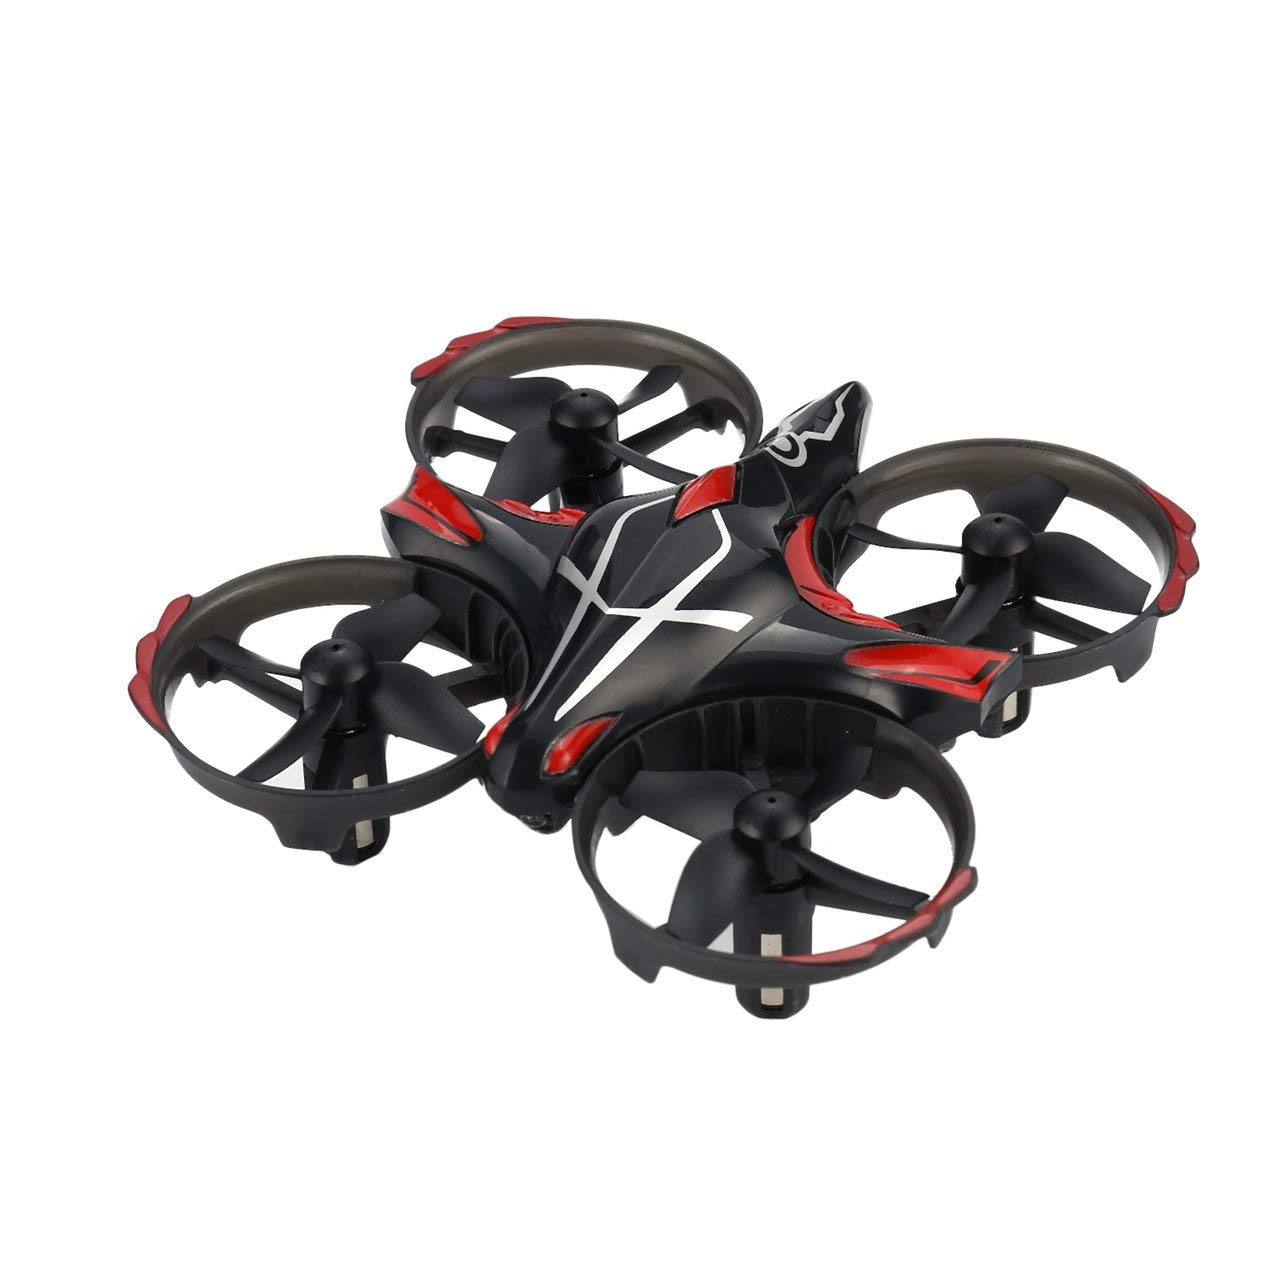 JJR/C H56 2.4G Mini Drone RC Infrared Sensing Altitude Hold 3D Flip Kids,Black WOSOSYEYO